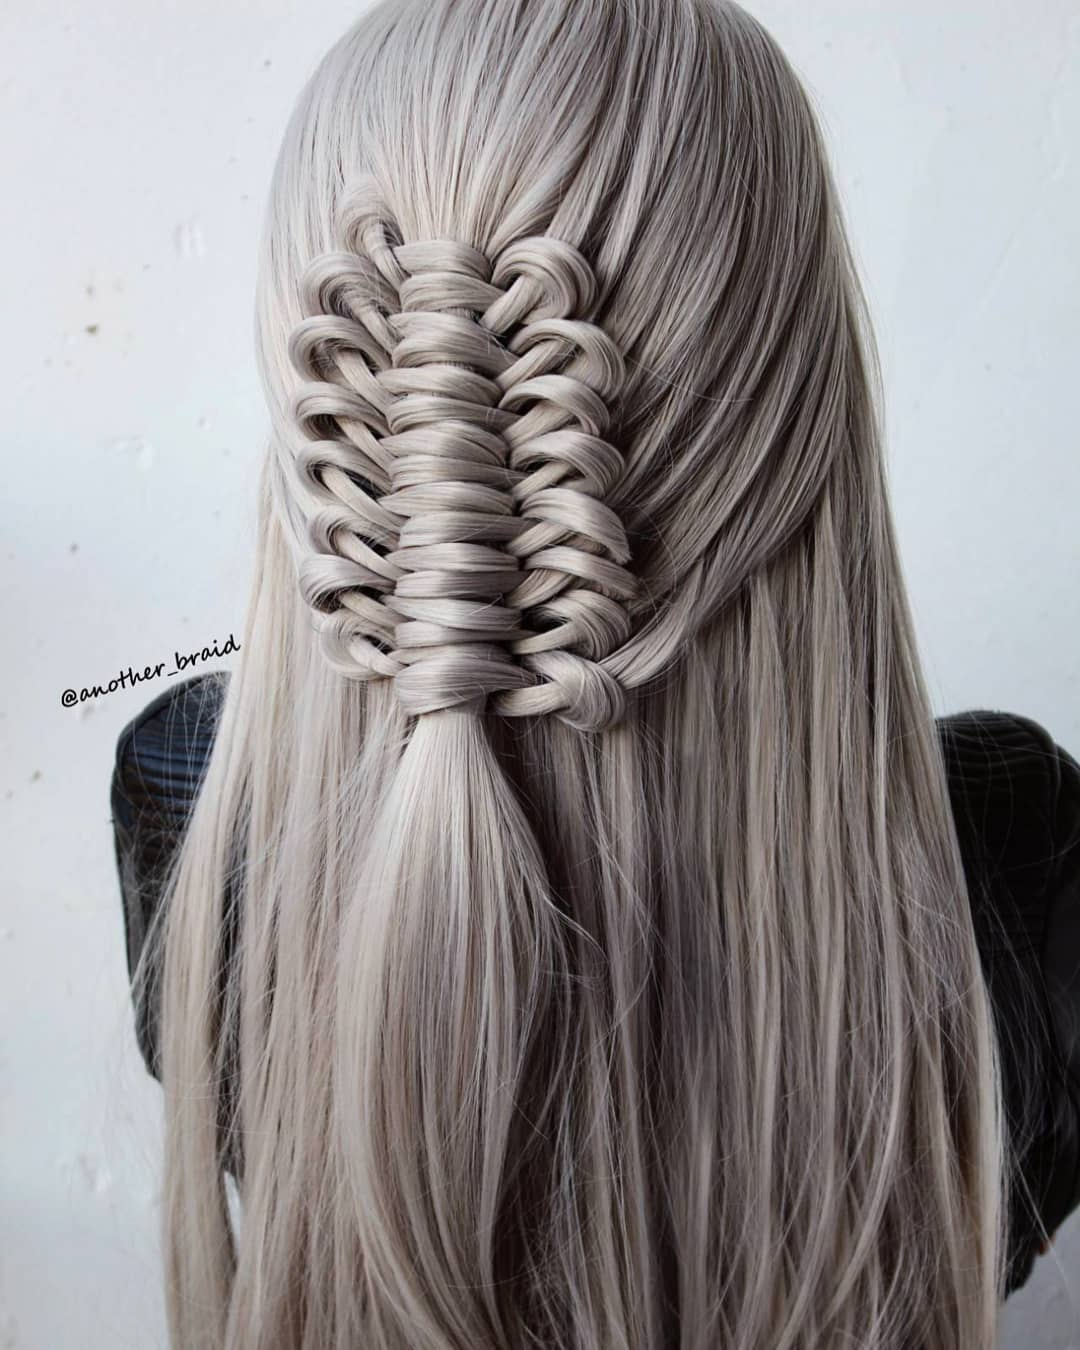 The Tutorial For This New Braid Is Up On Braidingvideo - Hair Tutorial